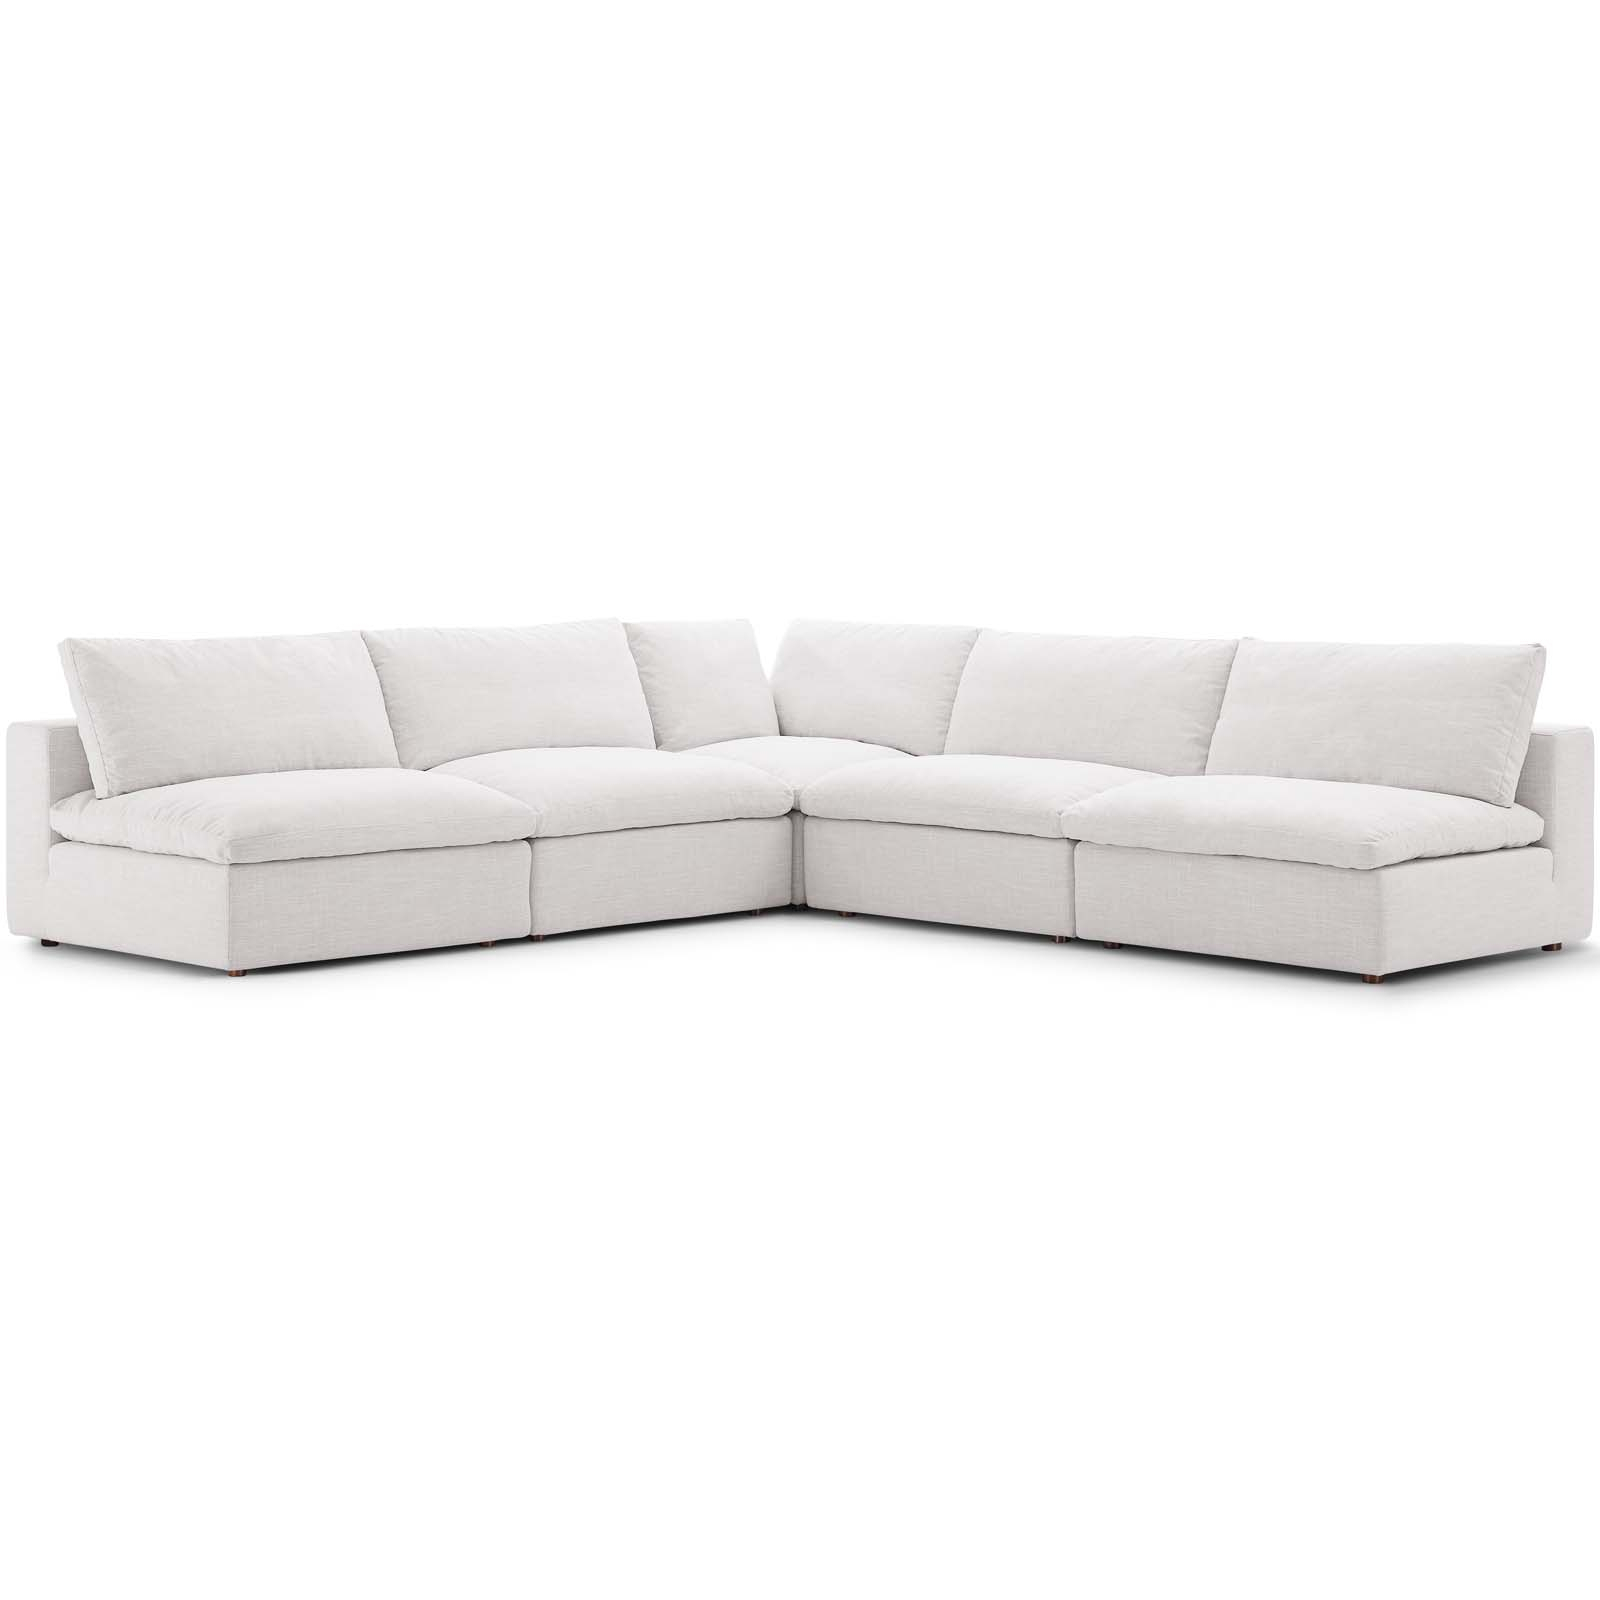 Commix Down Filled Overstuffed 5 Piece Sectional Sofa Set Within Down Filled Sectional Sofas (View 6 of 15)